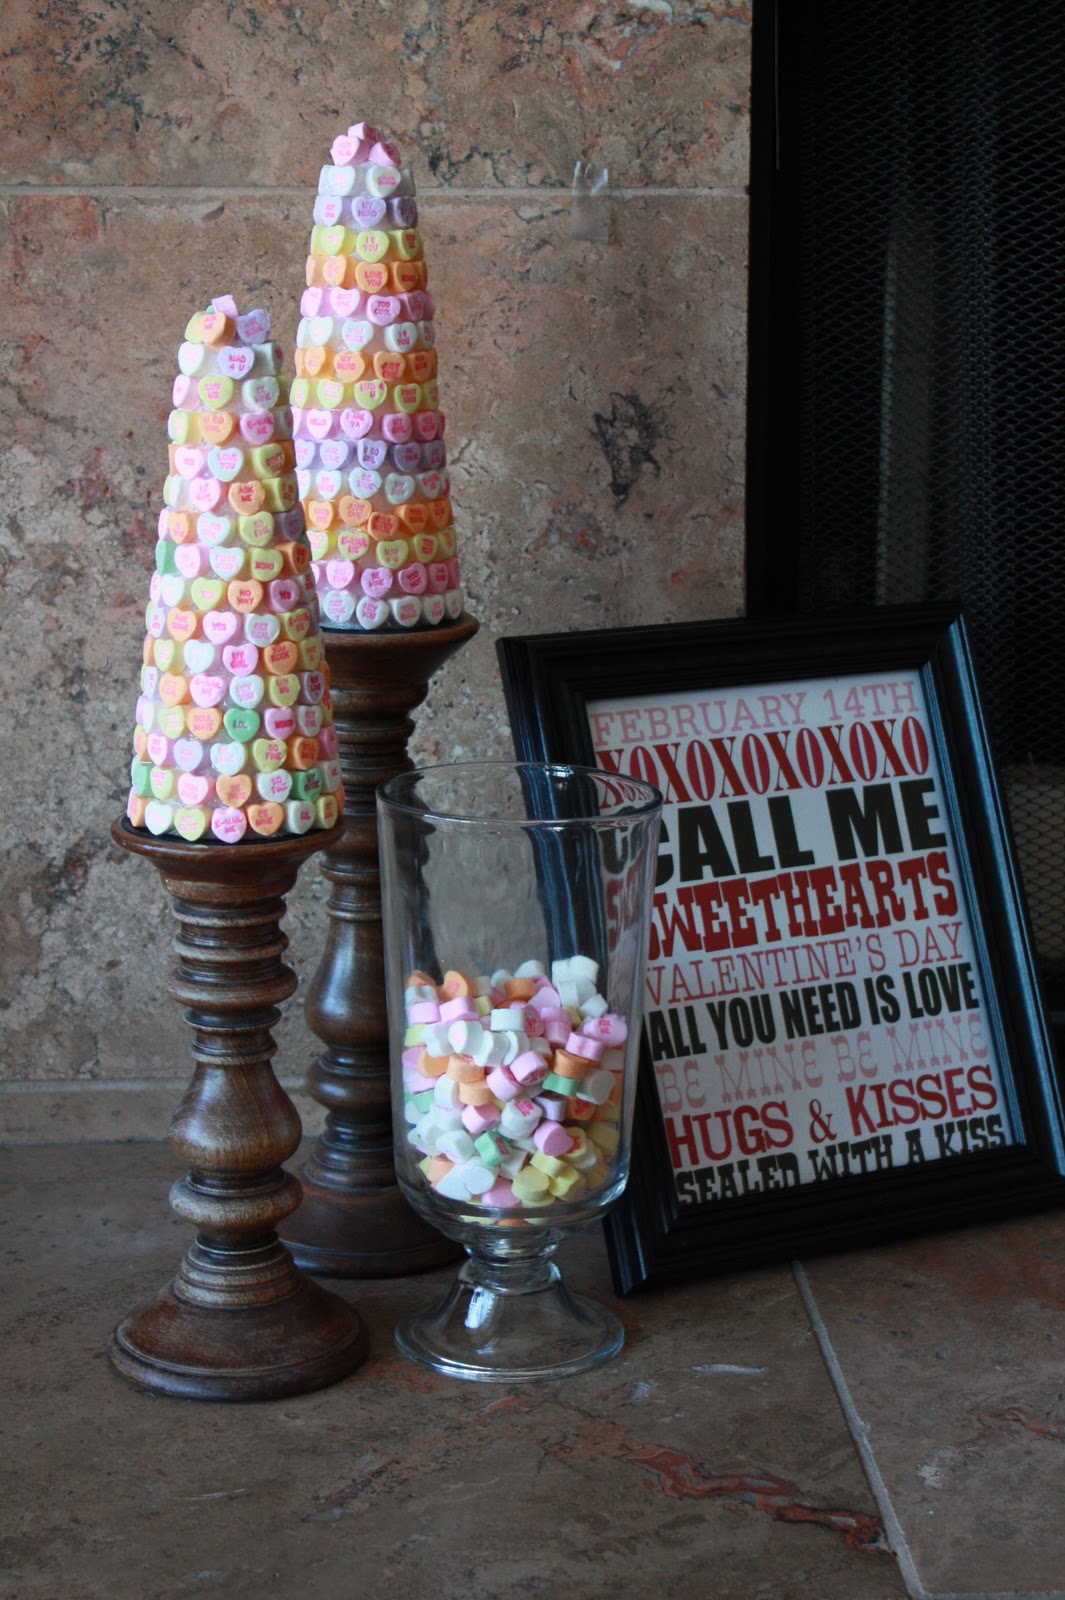 Love these candy topiaries using conversation heart for valentine's. It's perfect for Valentine's candy decor!